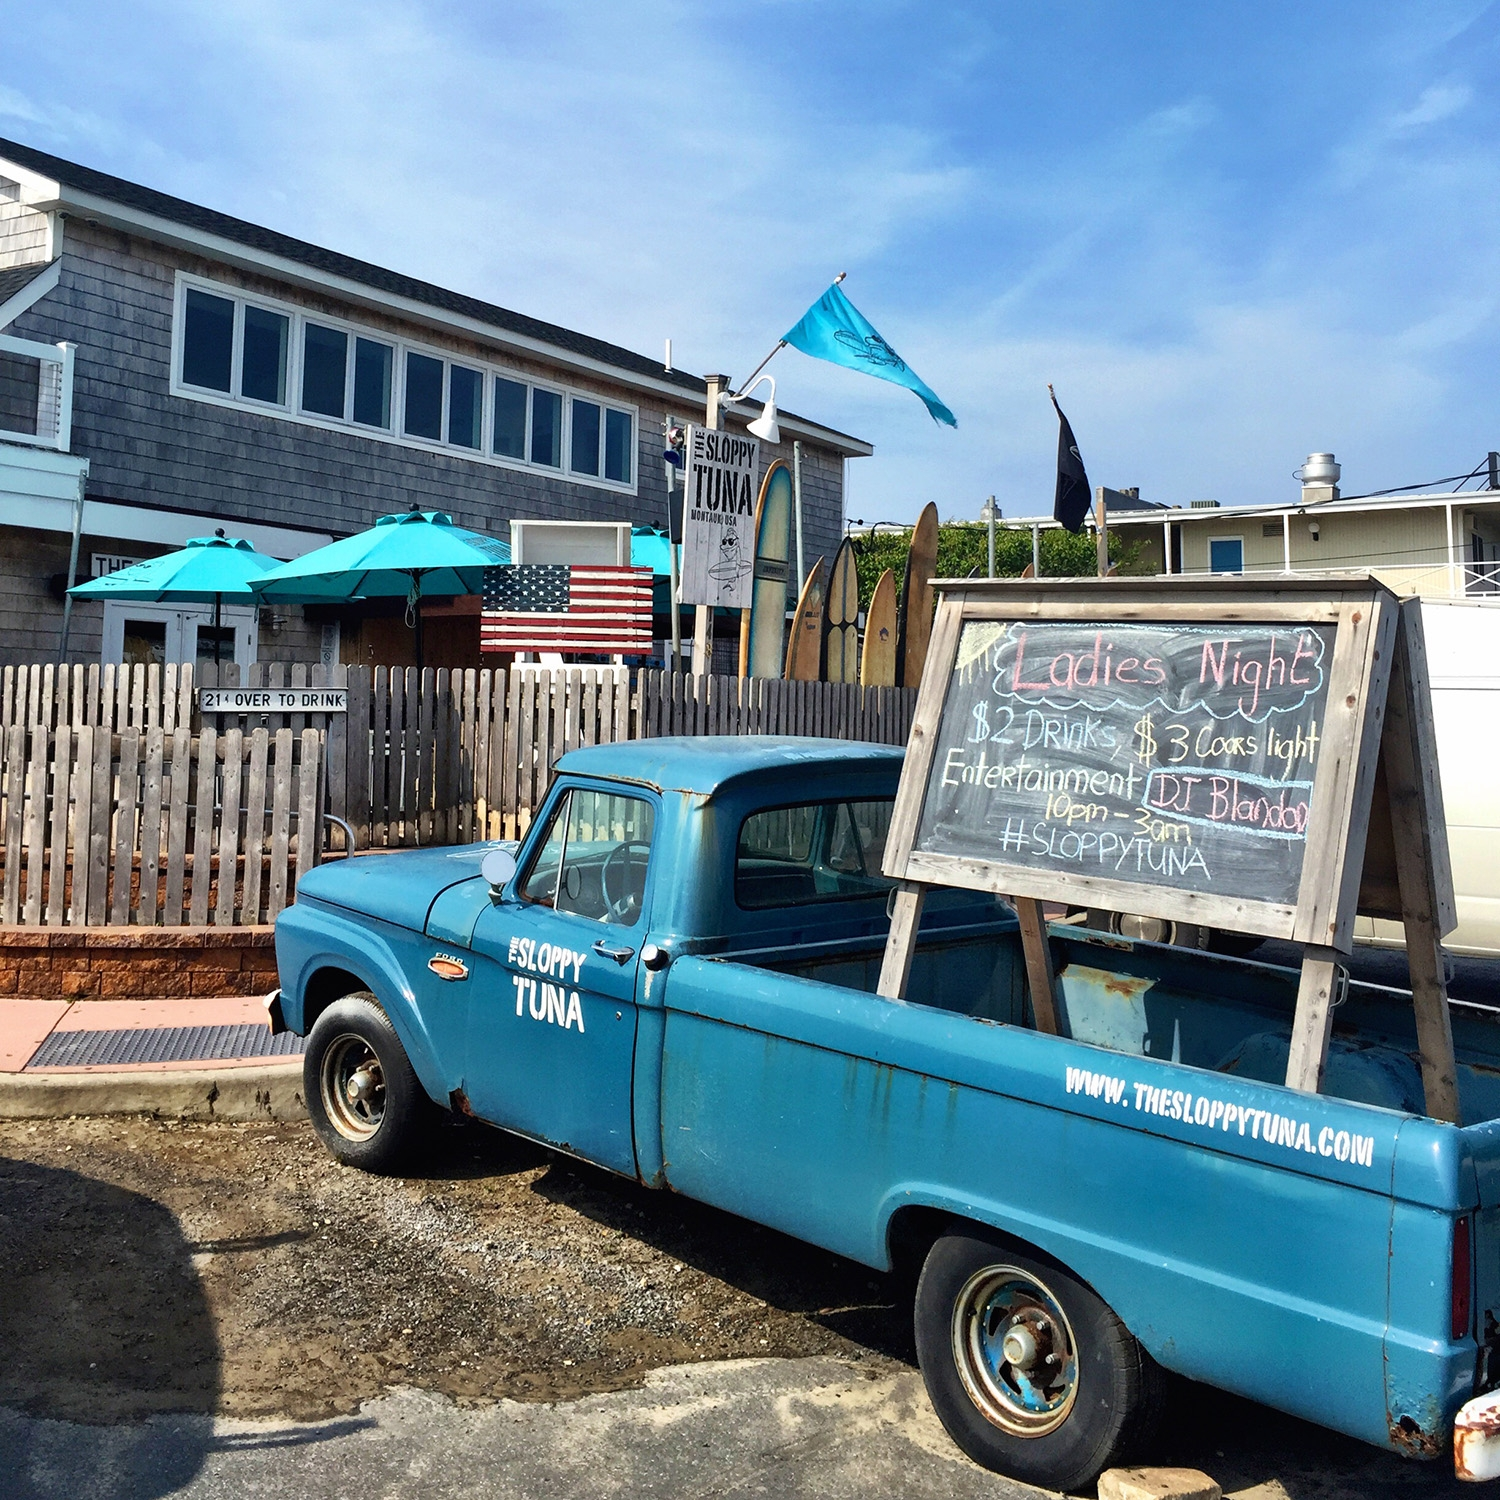 A blue pickup truck parked on the sidewalk in front of a shingle house has a large blackboard sign in the tray advertising a Ladies Night